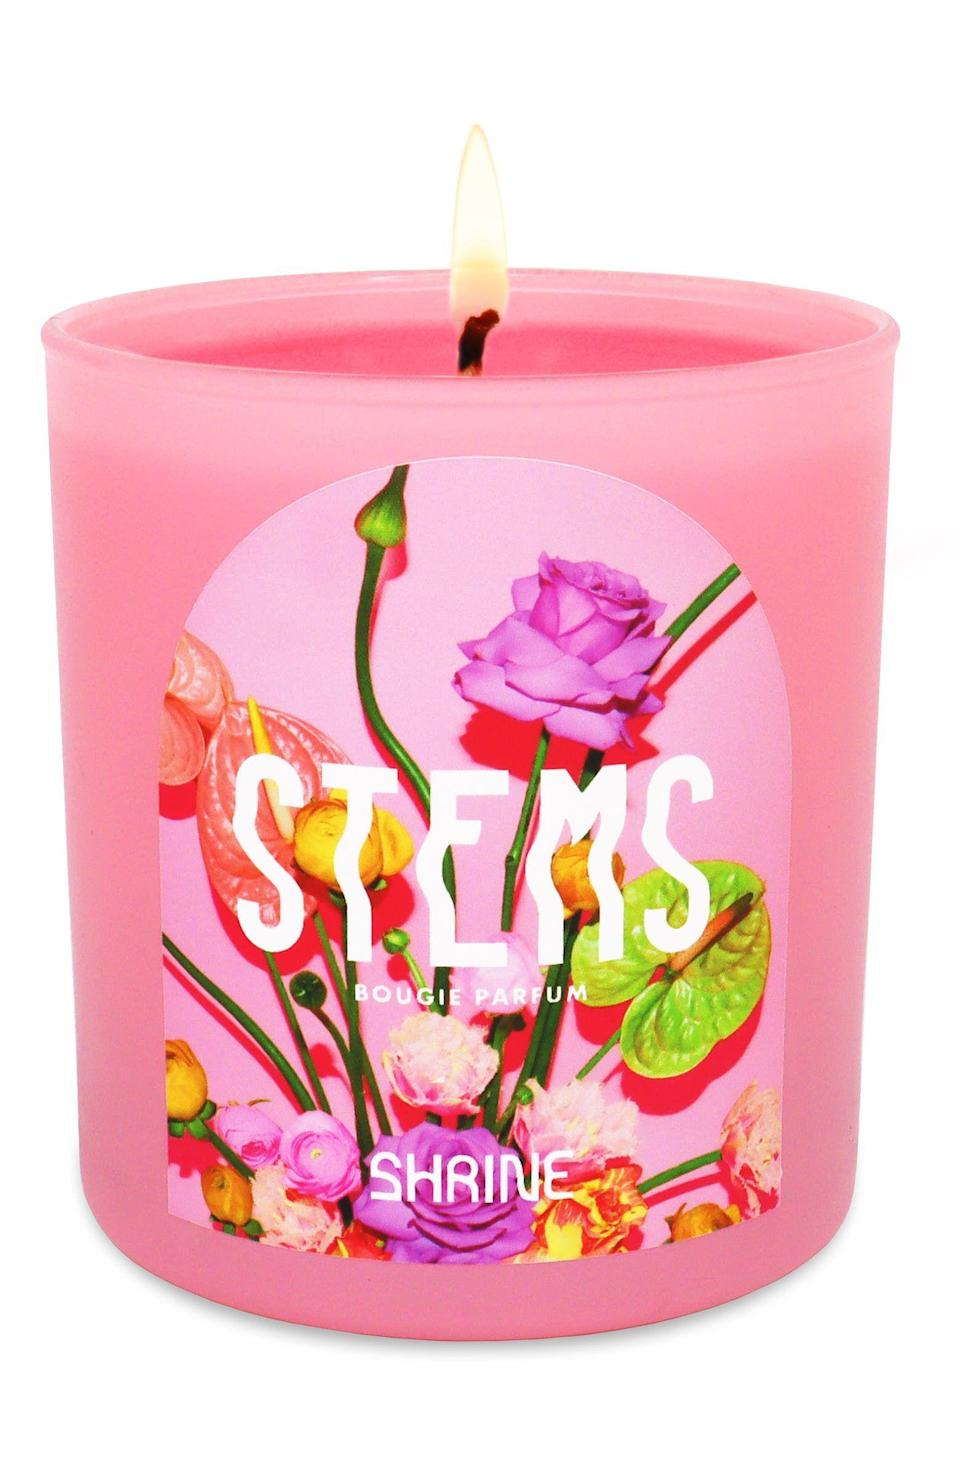 """<p><strong>SHRINE</strong></p><p><strong>$38.00</strong></p><p><a href=""""https://go.redirectingat.com?id=74968X1596630&url=https%3A%2F%2Fwww.nordstrom.com%2Fs%2Fshrine-stems-floral-scented-candle%2F5770797&sref=https%3A%2F%2Fwww.cosmopolitan.com%2Fstyle-beauty%2Fbeauty%2Fg4577%2Fvalentines-day-gifts-to-give-yourself%2F"""" rel=""""nofollow noopener"""" target=""""_blank"""" data-ylk=""""slk:Shop Now"""" class=""""link rapid-noclick-resp"""">Shop Now</a></p>"""